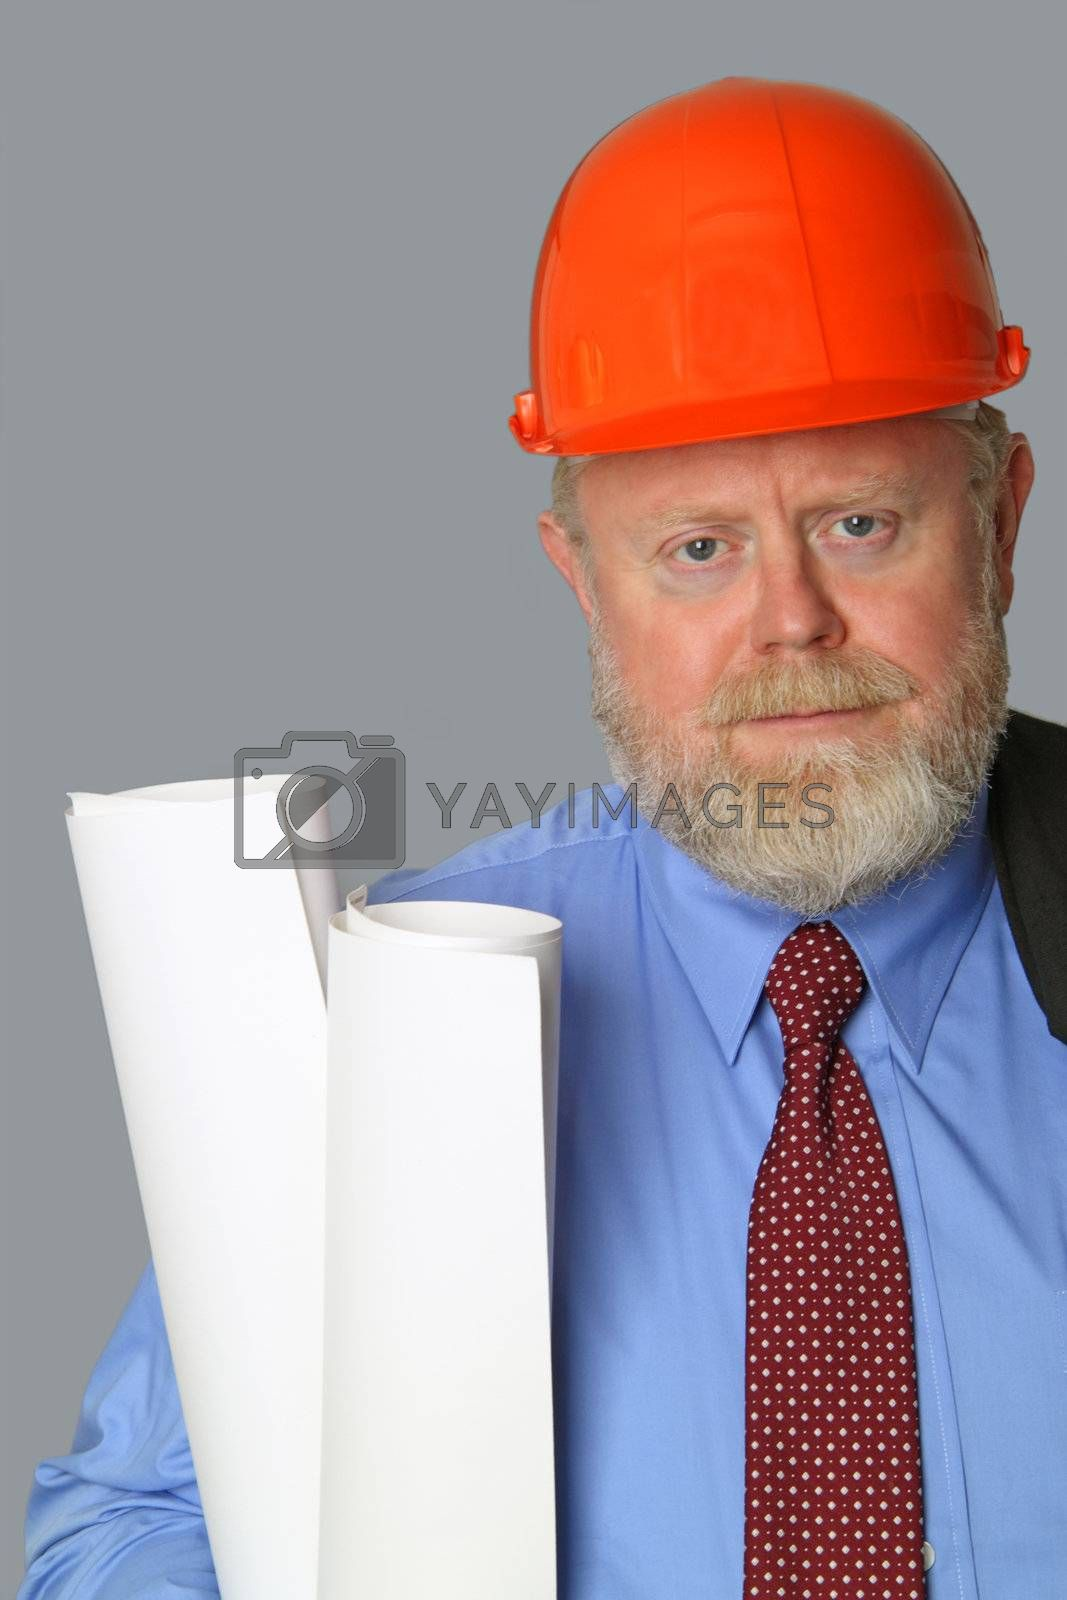 Architect with blueprints and hard hat on grey background